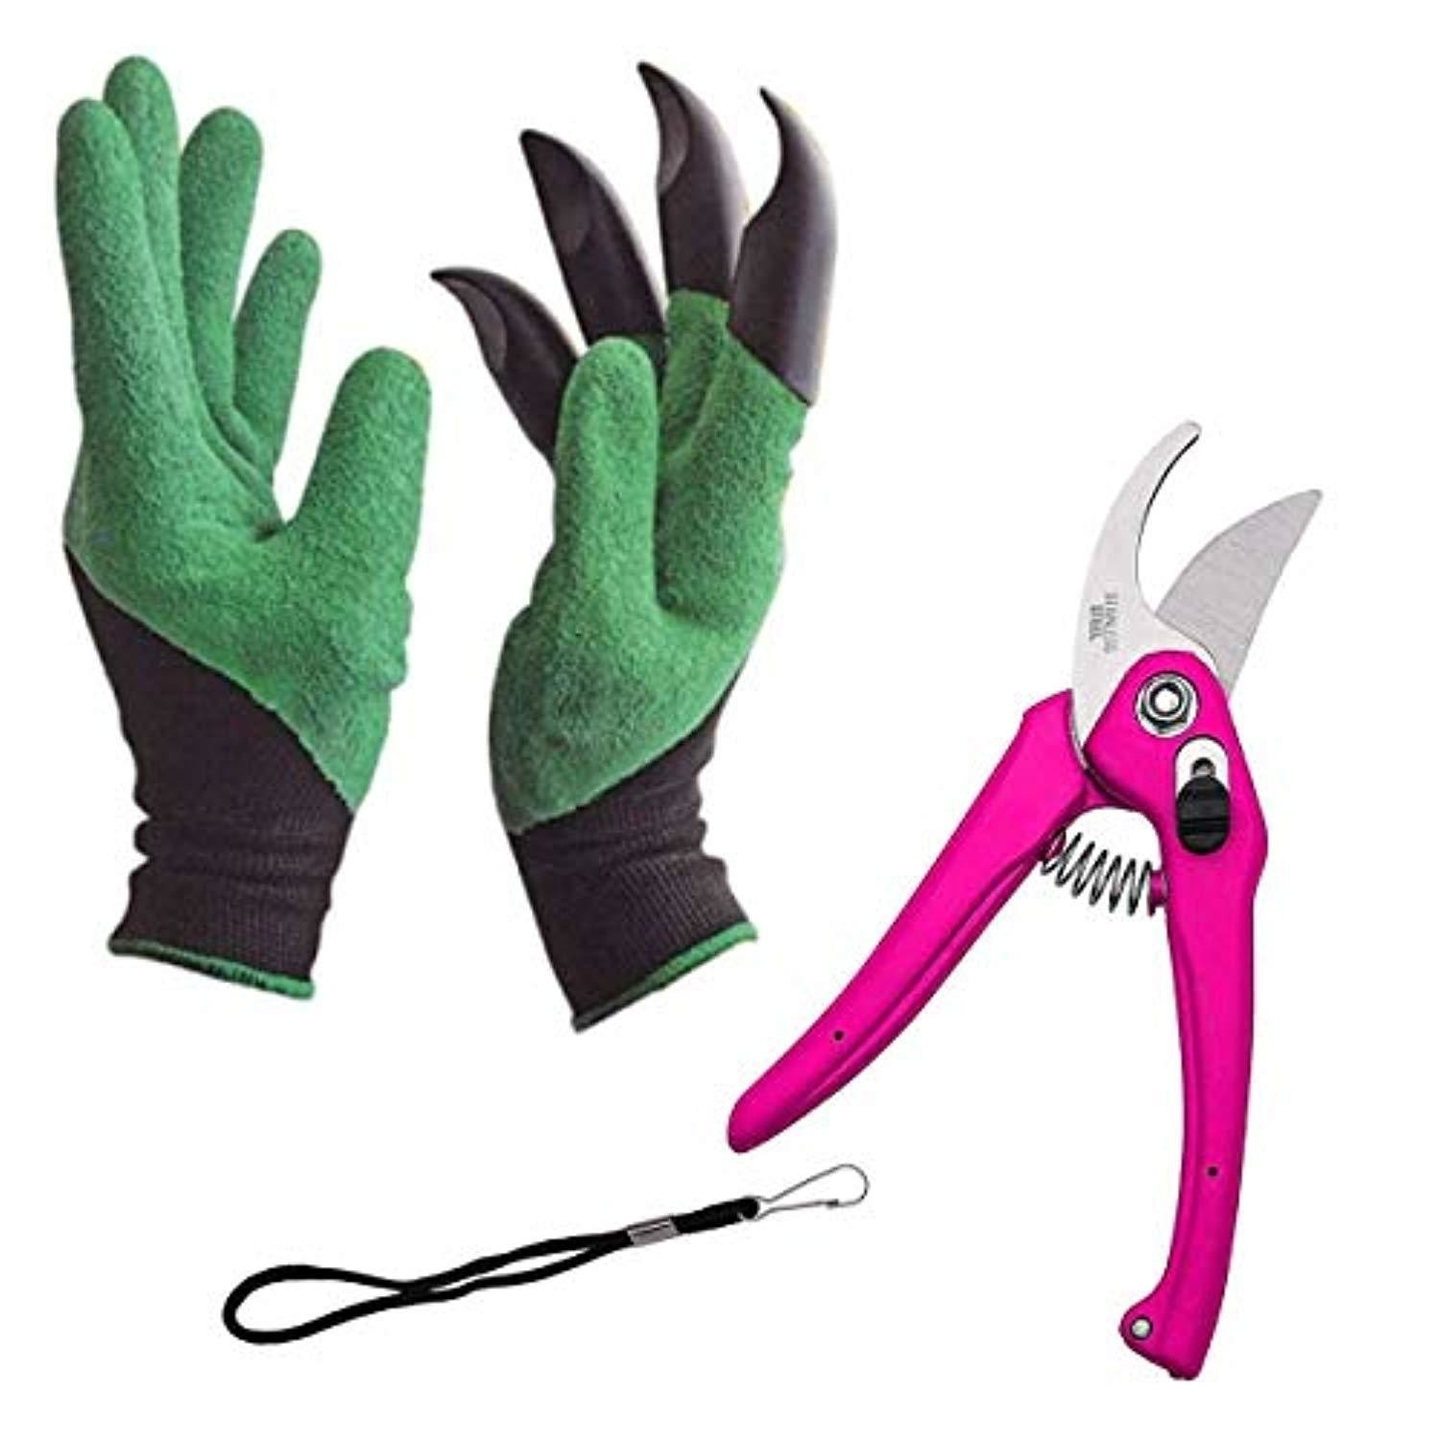 Gardening Tools - Garden Gloves with Claws for Digging and Planting, 1 Pair Ergonomic Grip, Incredibly Sharp Secateurs